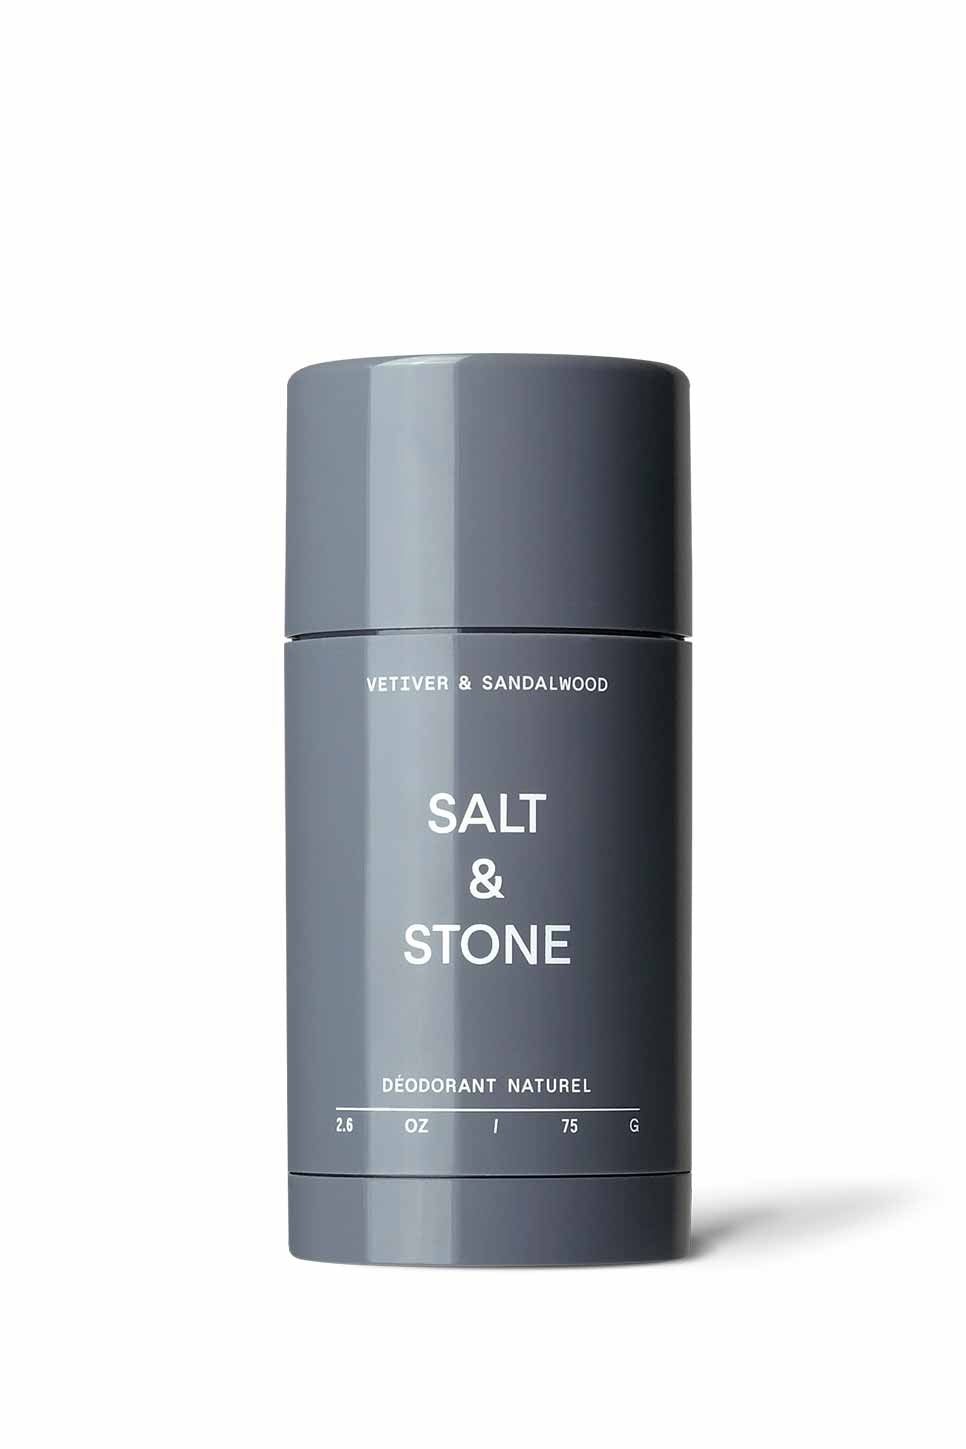 Salt & Stone - Natural Deodorant Formula 2 - Vetiver + Sandalwood